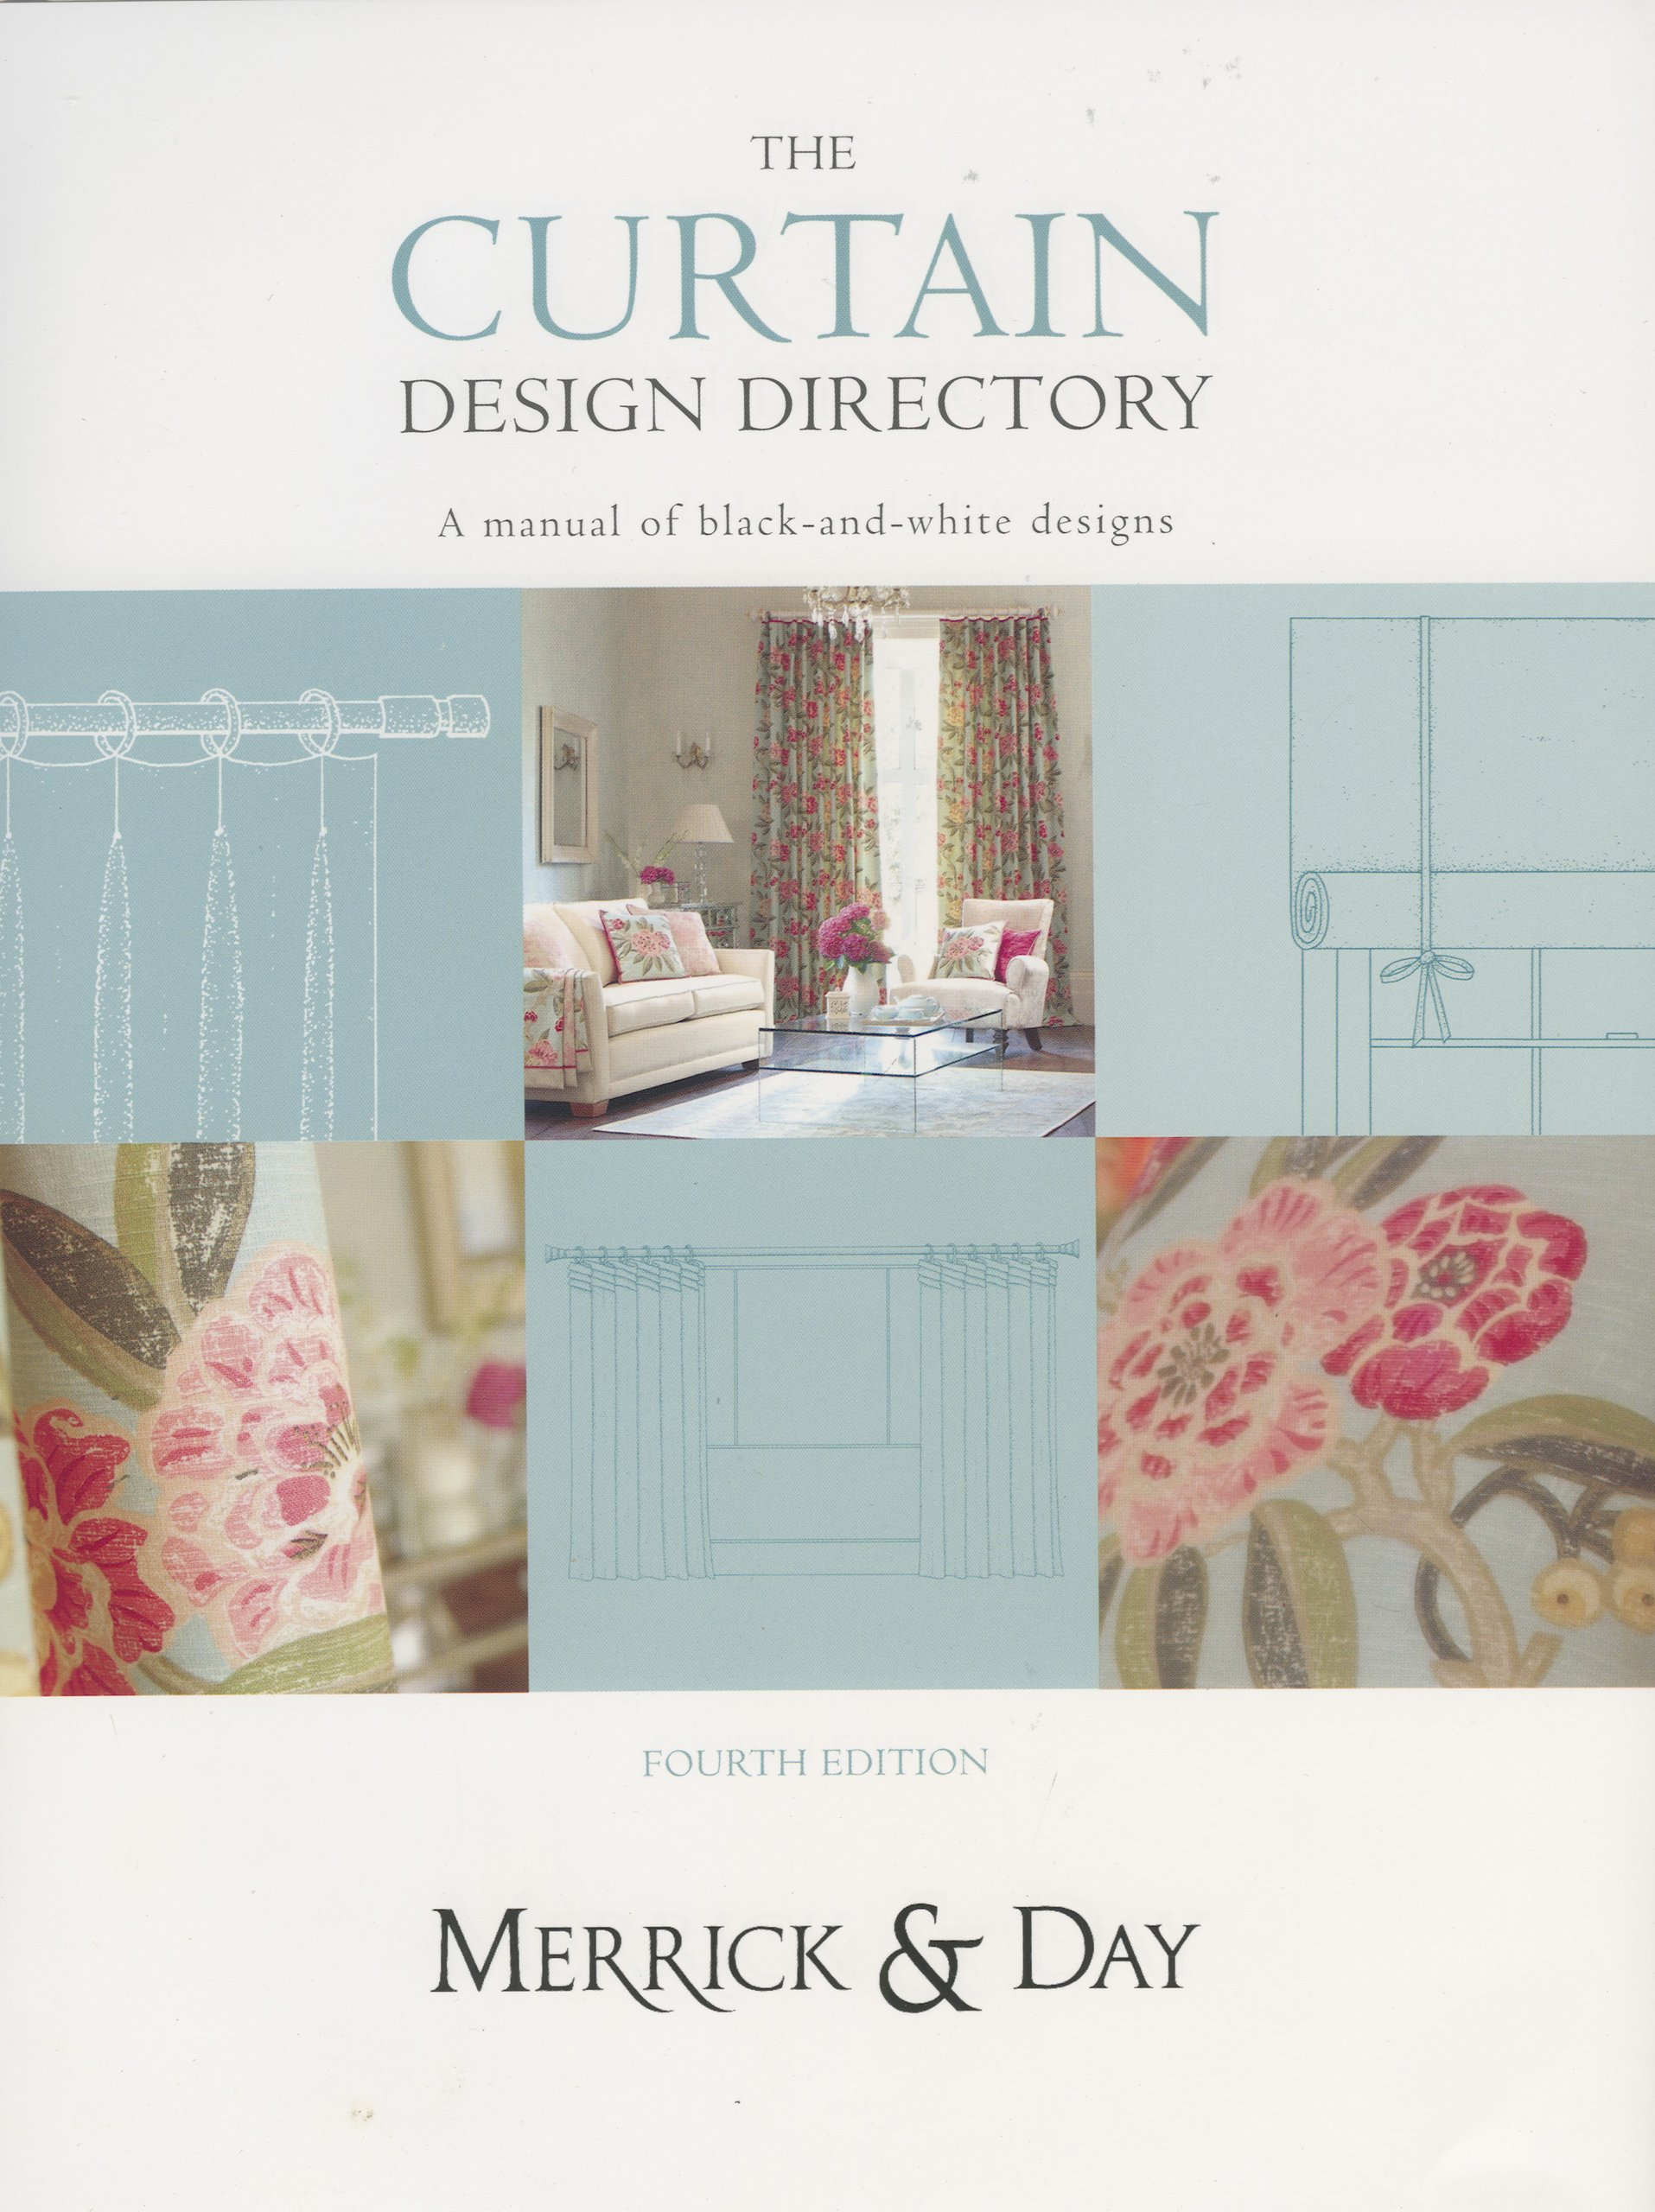 Curtain design directory the must have handbook for all interior designers and curtain makers hardcover march 2 2007